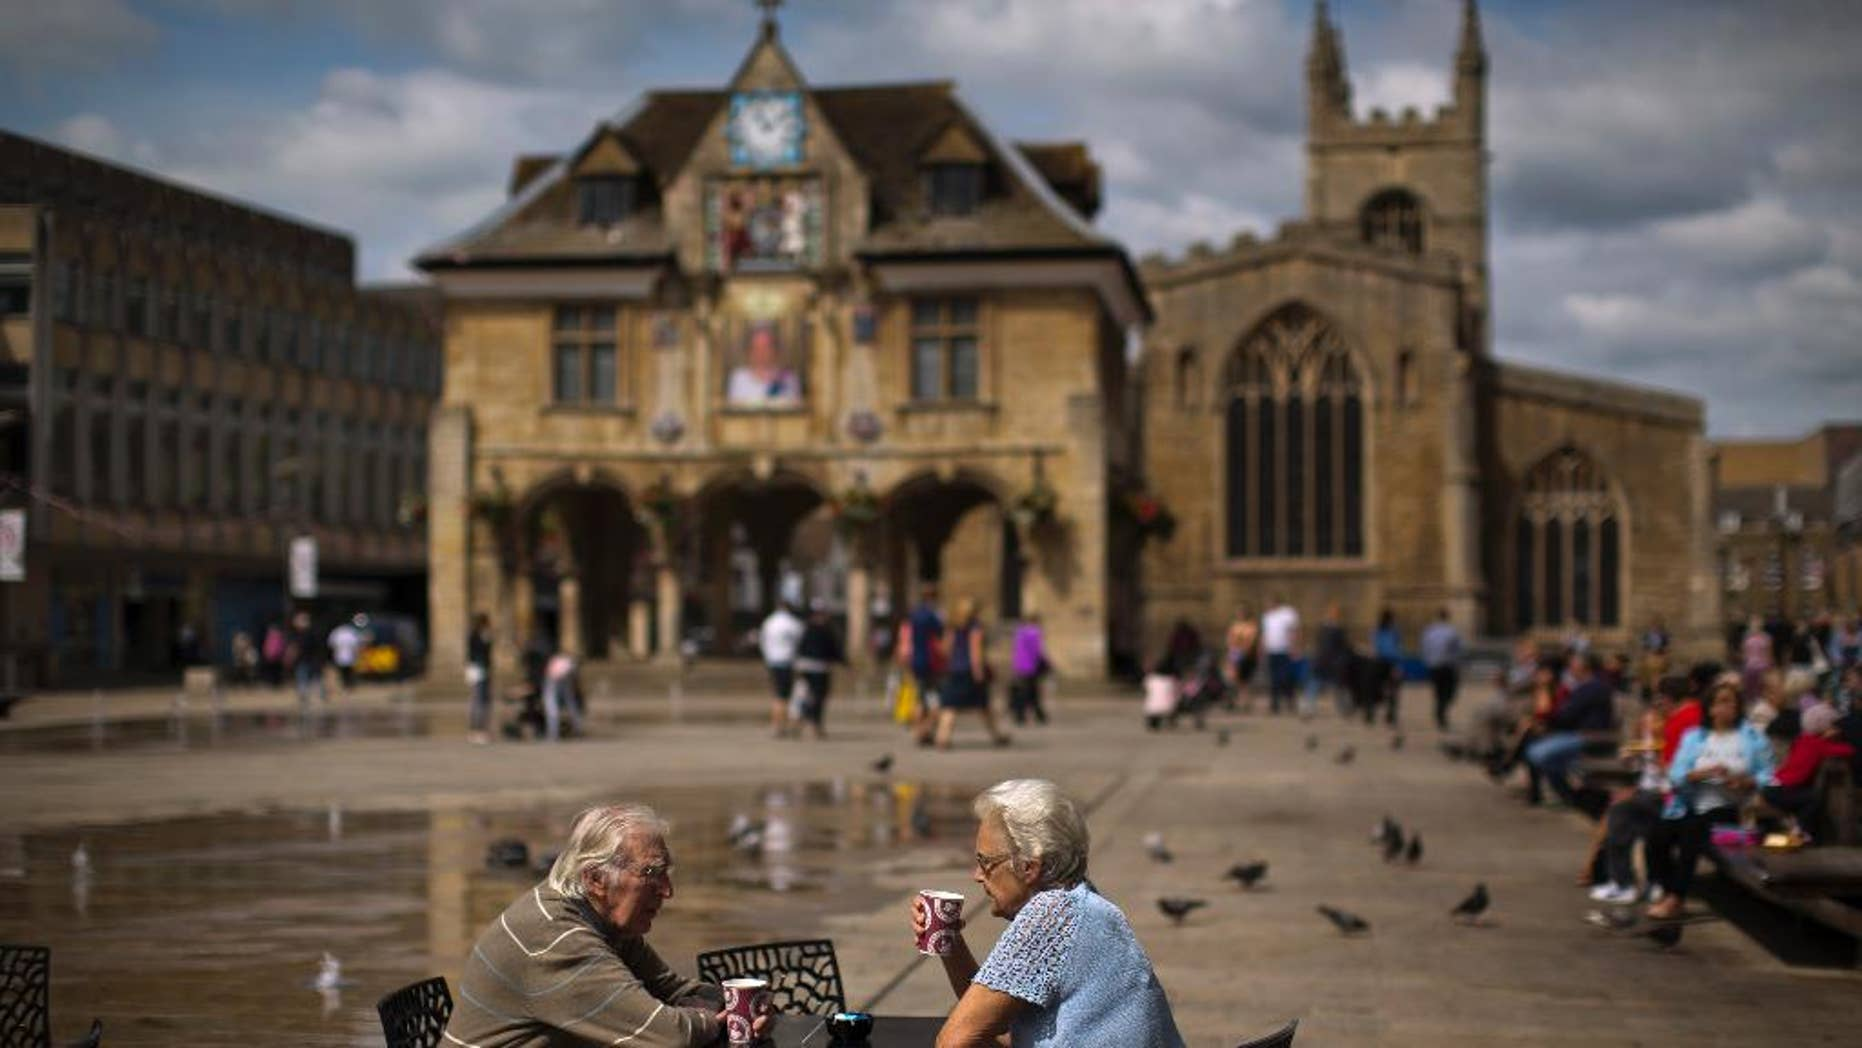 In this Wednesday, July 6, 2016 photo, a couple drink coffee in front of the Guildhall, also known as the Butter Cross, on Cathedral Square, in downtown Peterborough, East of England. Many people who voted for Britain to get out of the European Union look at multi-ethnic Peterborough as a warning example. They say British identity has been eroded in parts of the city where migrants have moved in and pubs have been replaced by shawarma shops or ethnic food stores. (AP Photo/Emilio Morenatti)